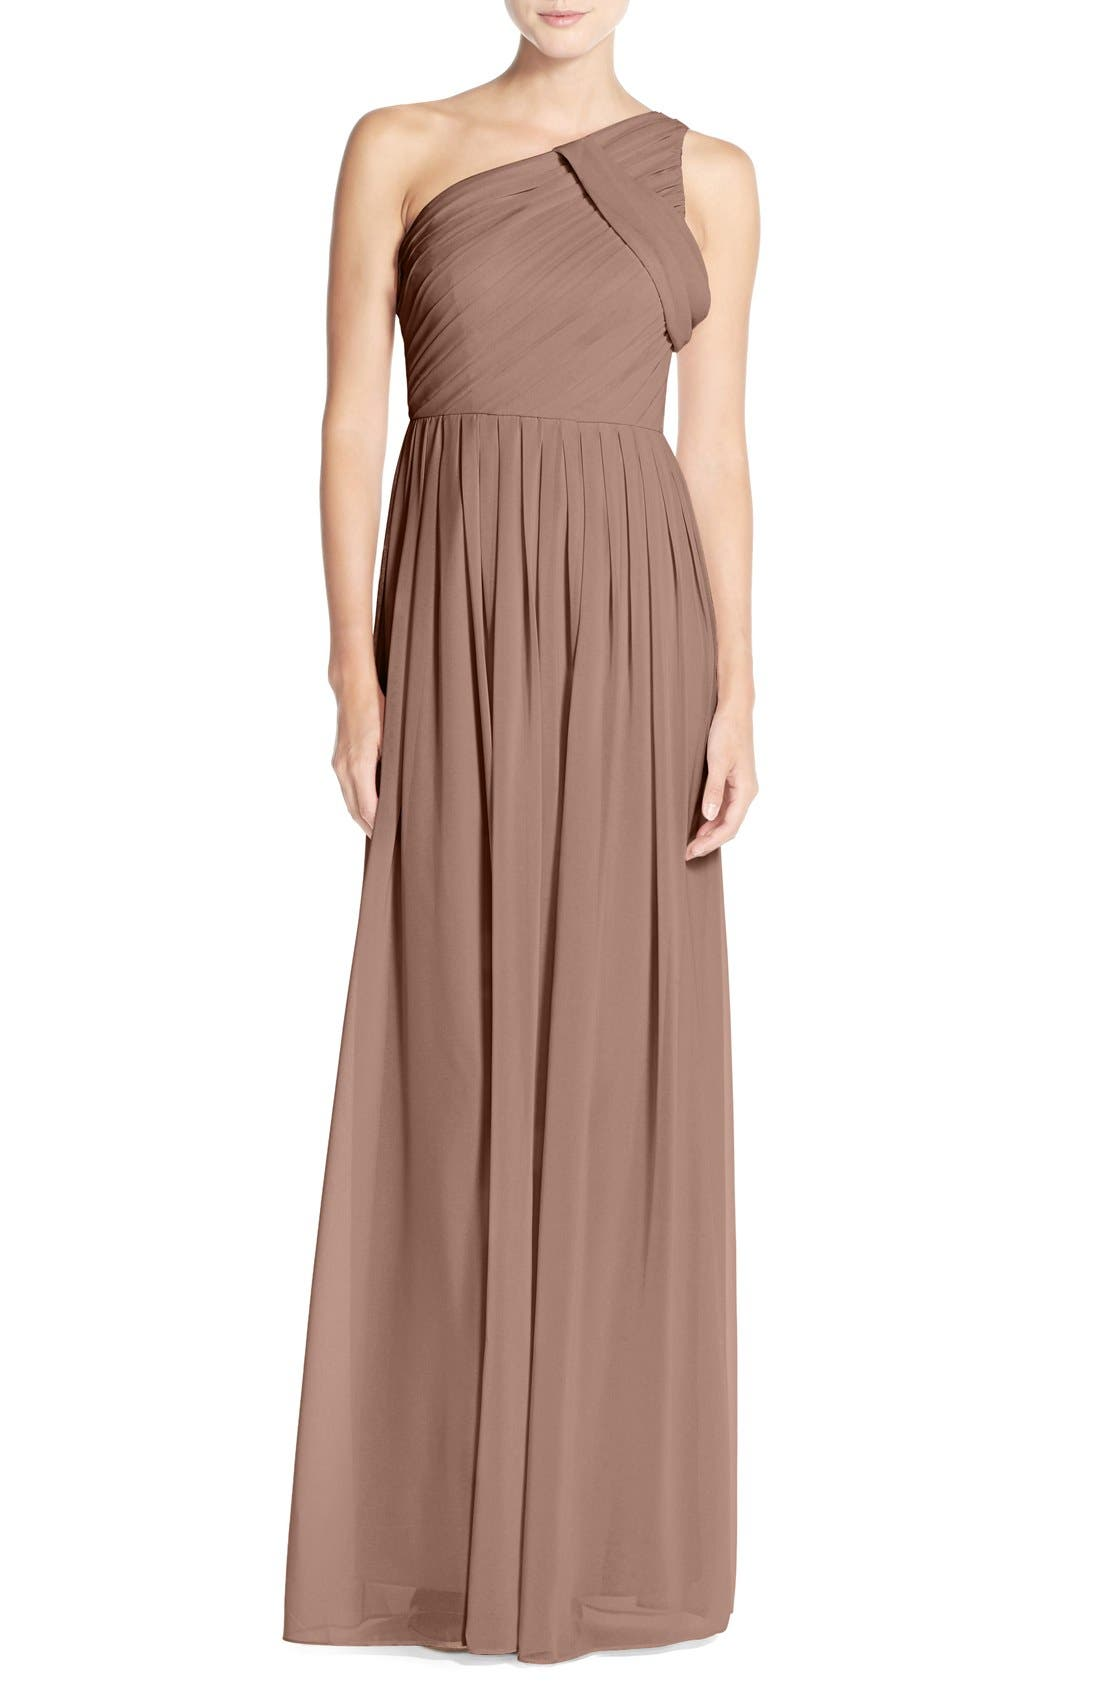 'Chloe' One-Shoulder Pleat Chiffon Gown,                             Main thumbnail 4, color,